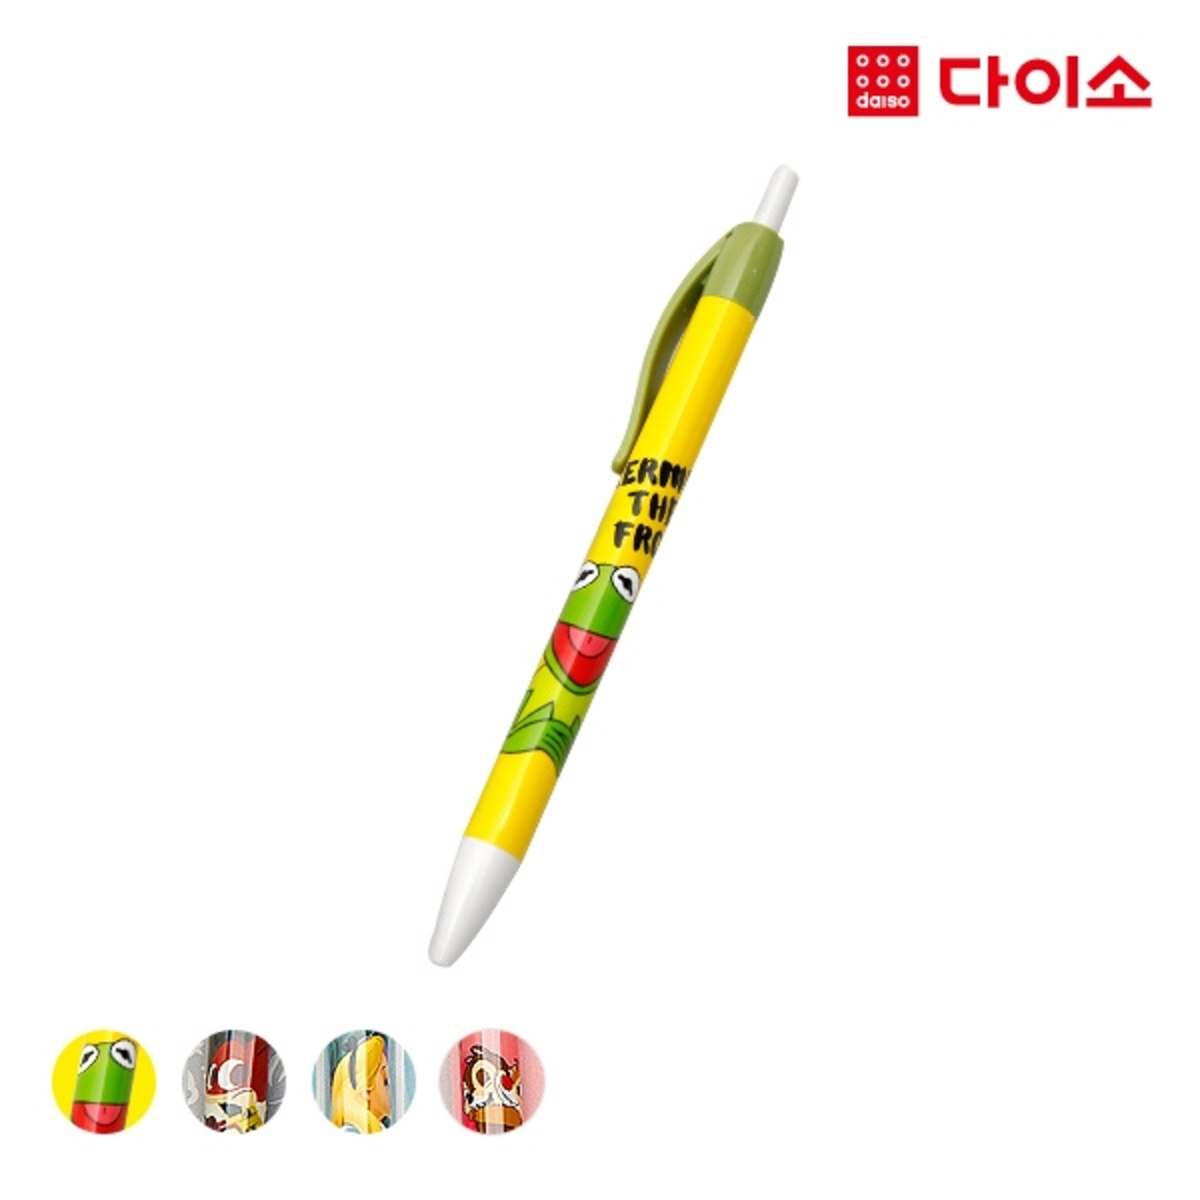 Chip and Dale Mechanical Pencil